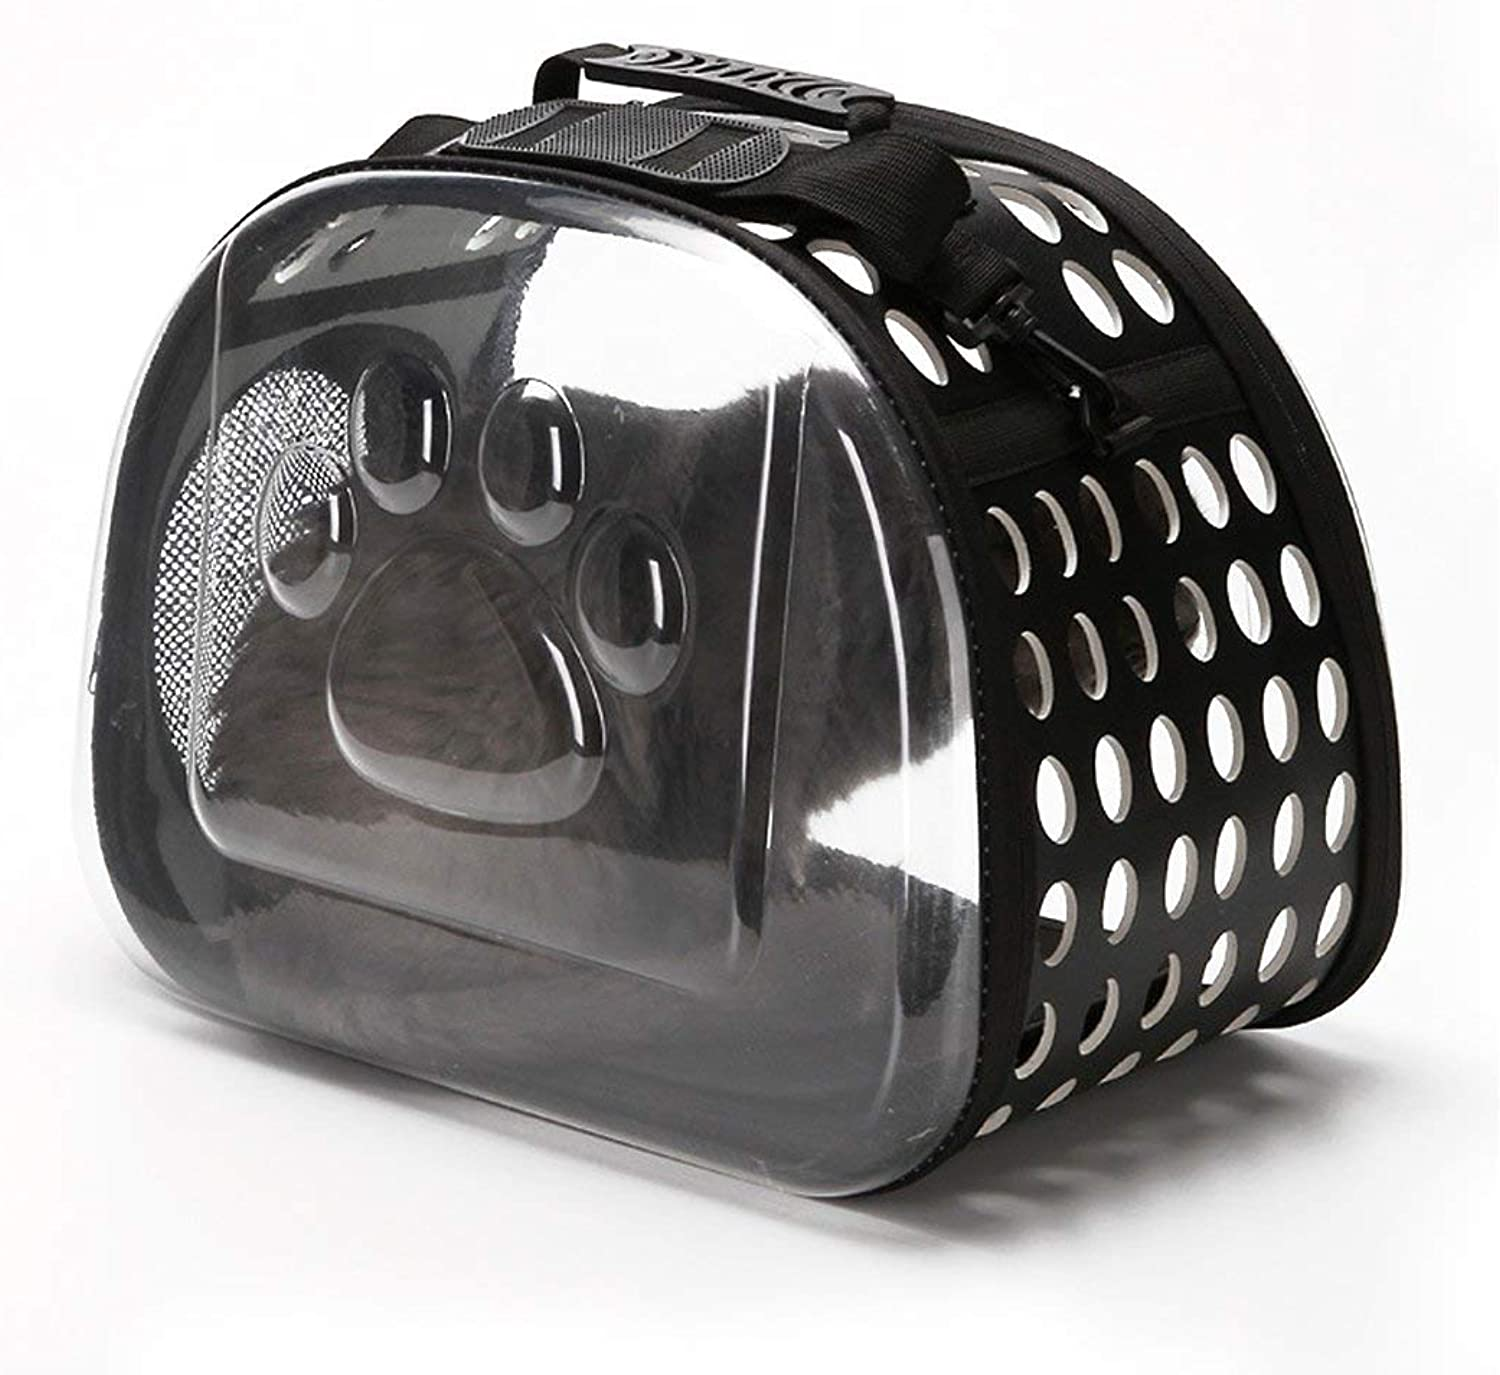 FuLanDe Top Loaded Pet Carrier for Cats and Dogs, Collapsible Made from Suitcase Material a Great Alternative to pet Kennel and Dog Carrier Purse